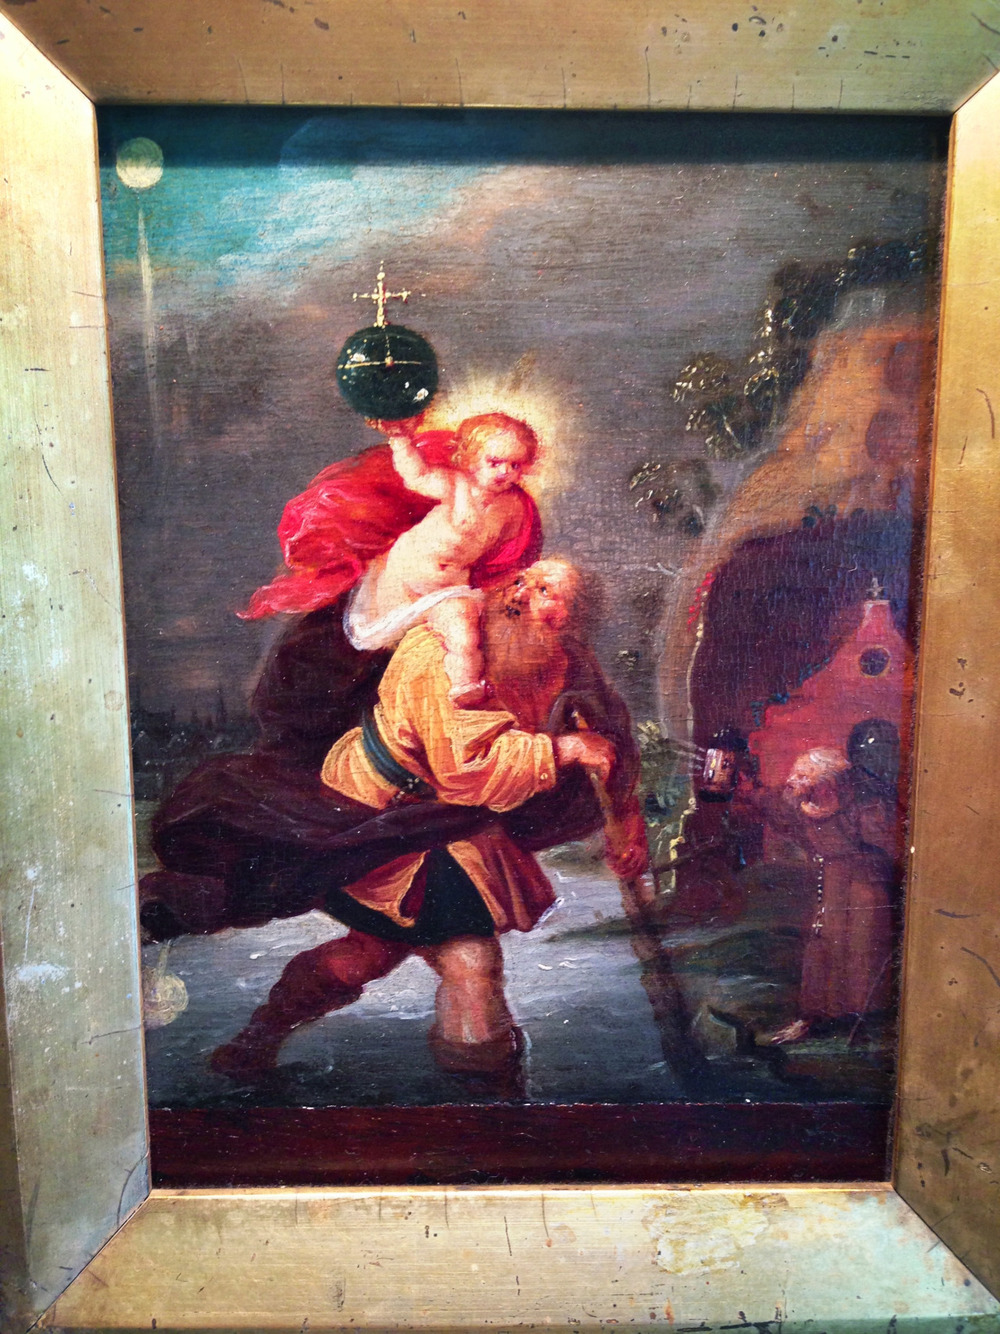 "This small, unsigned oil painting (6 3/16"" high x 5 1/16"" wide) on wood panel, probably from the 19th Century (and quite possibly earlier), is of St. Christopher carrying the Christ Child.        From Wikipedia:     "" Saint Christopher  is   venerated   by   Roman Catholics   and   Orthodox Christians   as a   martyr   killed in the reign of the 3rd-century Roman Emperor   Decius   (reigned 249–251) or alternatively under the Roman Emperor   Maximinus II Dacian   (reigned 308–313).     There are several legends associated with the life and death of Saint Christopher, which first appear in Greece, perhaps in the 6th century, and had spread to France by the 9th century. The 11th-century writer   Walter of Speyer   gives one version, but the most popular variations originate from the 13th-century    Golden Legend   .  [3]     According to the legendary account of his life Christopher was a Canaanite 5 cubits (7.5 feet (2.3 m)) tall and with a fearsome face. While serving the king of Canaan, he took it into his head to go and serve ""the greatest king there was"". He went to the king who was reputed to be the greatest, but one day he saw the king cross himself at the mention of the devil. On thus learning that the king feared the   devil  , he departed to look for the devil. He came across a band of marauders, one of whom declared himself to be the devil, so Christopher decided to serve him. But when he saw his new master avoid a wayside cross and found out that the devil feared Christ, he left him and enquired from people where to find Christ. He met a   hermit   who instructed him in the Christian faith. Christopher asked him how he could serve Christ. When the hermit suggested fasting and prayer, Christopher replied that he was unable to perform that service. The hermit then suggested that because of his size and strength Christopher could serve Christ by assisting people to cross a dangerous river, where they were perishing in the attempt. The hermit promised that this service would be pleasing to Christ.     After Christopher had performed this service for some time, a little child asked him to take him across the river. During the crossing, the river became swollen and the child seemed as heavy as lead, so much that Christopher could scarcely carry him and found himself in great difficulty. When he finally reached the other side, he said to the child: ""You have put me in the greatest danger. I do not think the whole world could have been as heavy on my shoulders as you were."" The child replied: ""You had on your shoulders not only the whole world but Him who made it. I am Christ your king, whom you are serving by this work."" The child then vanished.     Christopher later visited the city of Lycia and there comforted the Christians who were being martyred. Brought before the local king, he refused to sacrifice to the pagan gods. The king tried to win him by riches and by sending two beautiful women to tempt him. Christopher converted the women to Christianity, as he had already converted thousands in the city. The king ordered him to be killed. Various attempts failed, but finally Christopher was decapitated."""